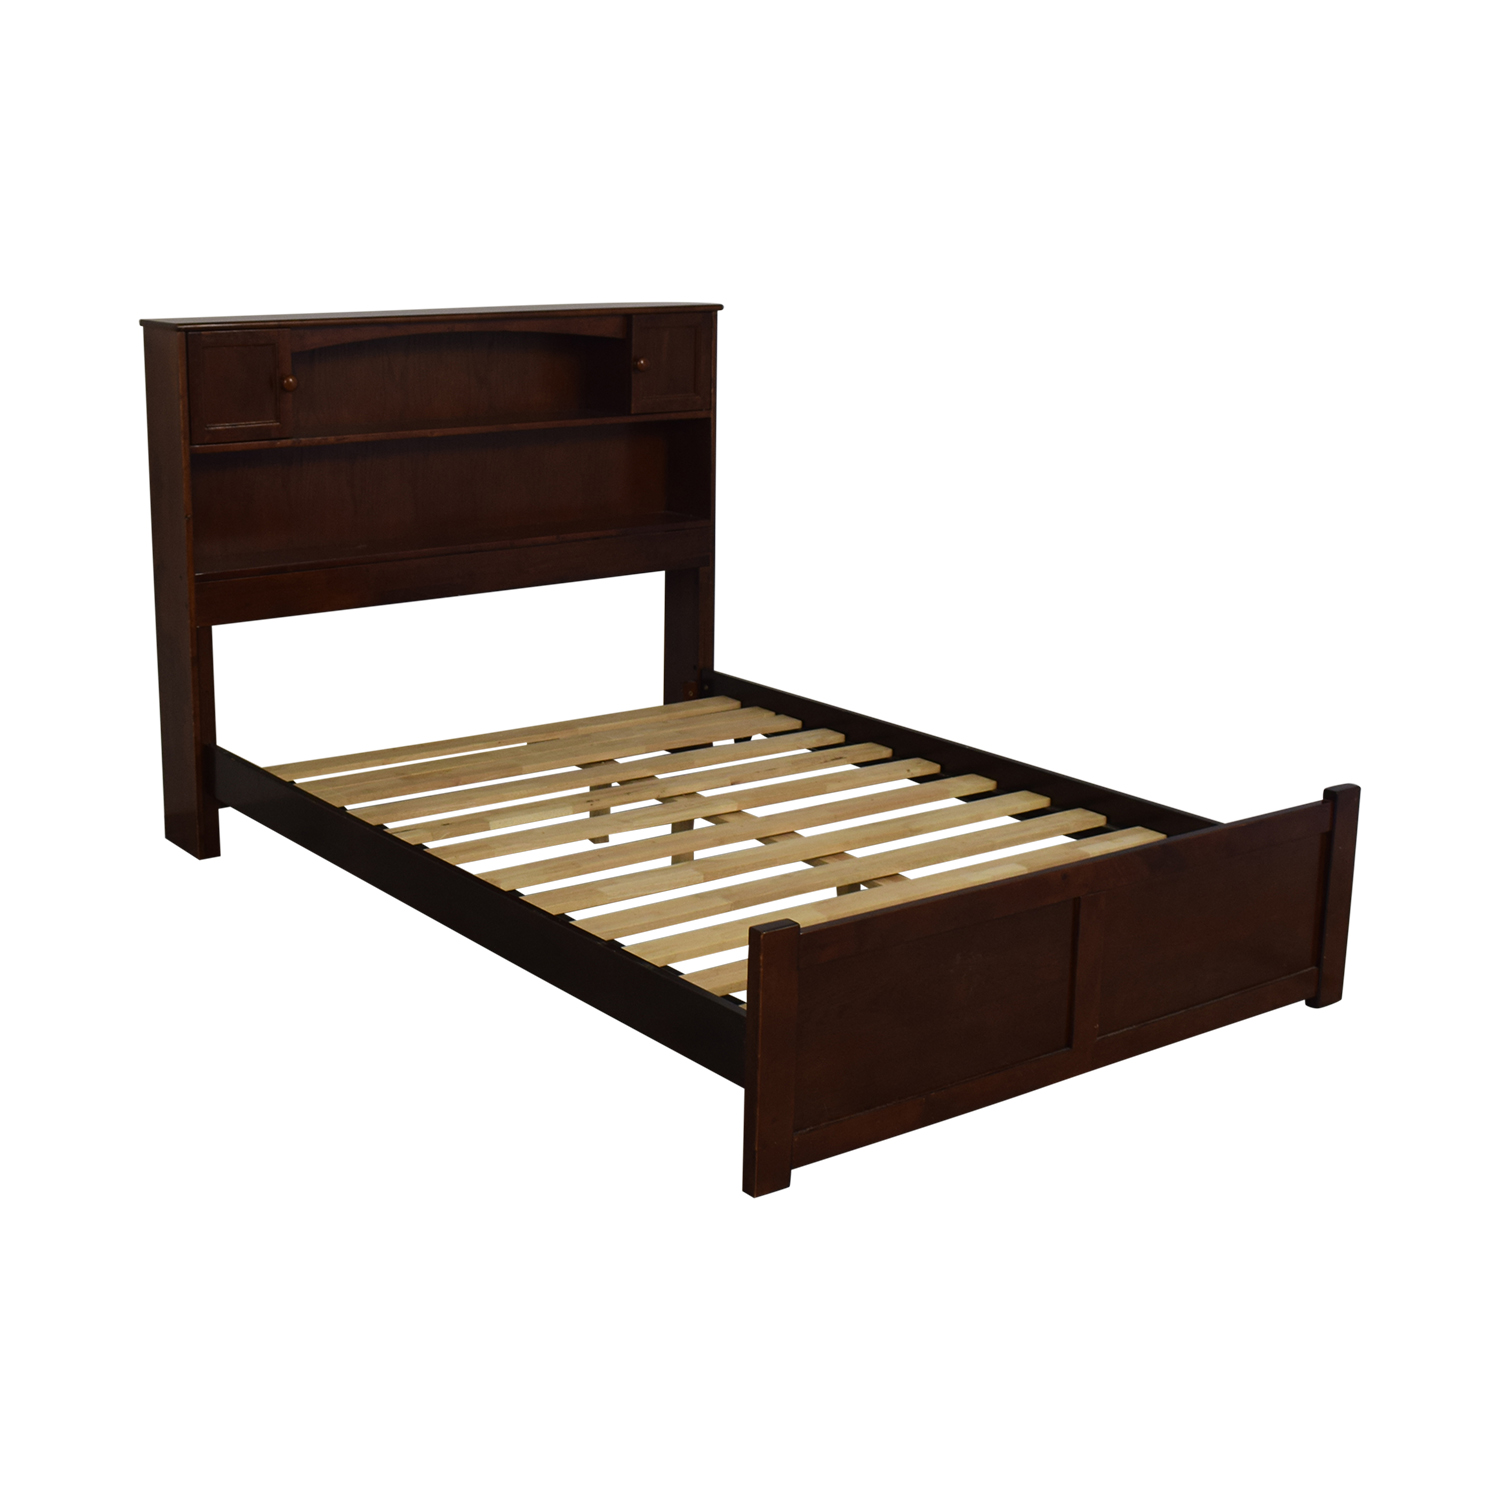 Viv + Rae Viv + Rae Edwin Platform Full Bed coupon